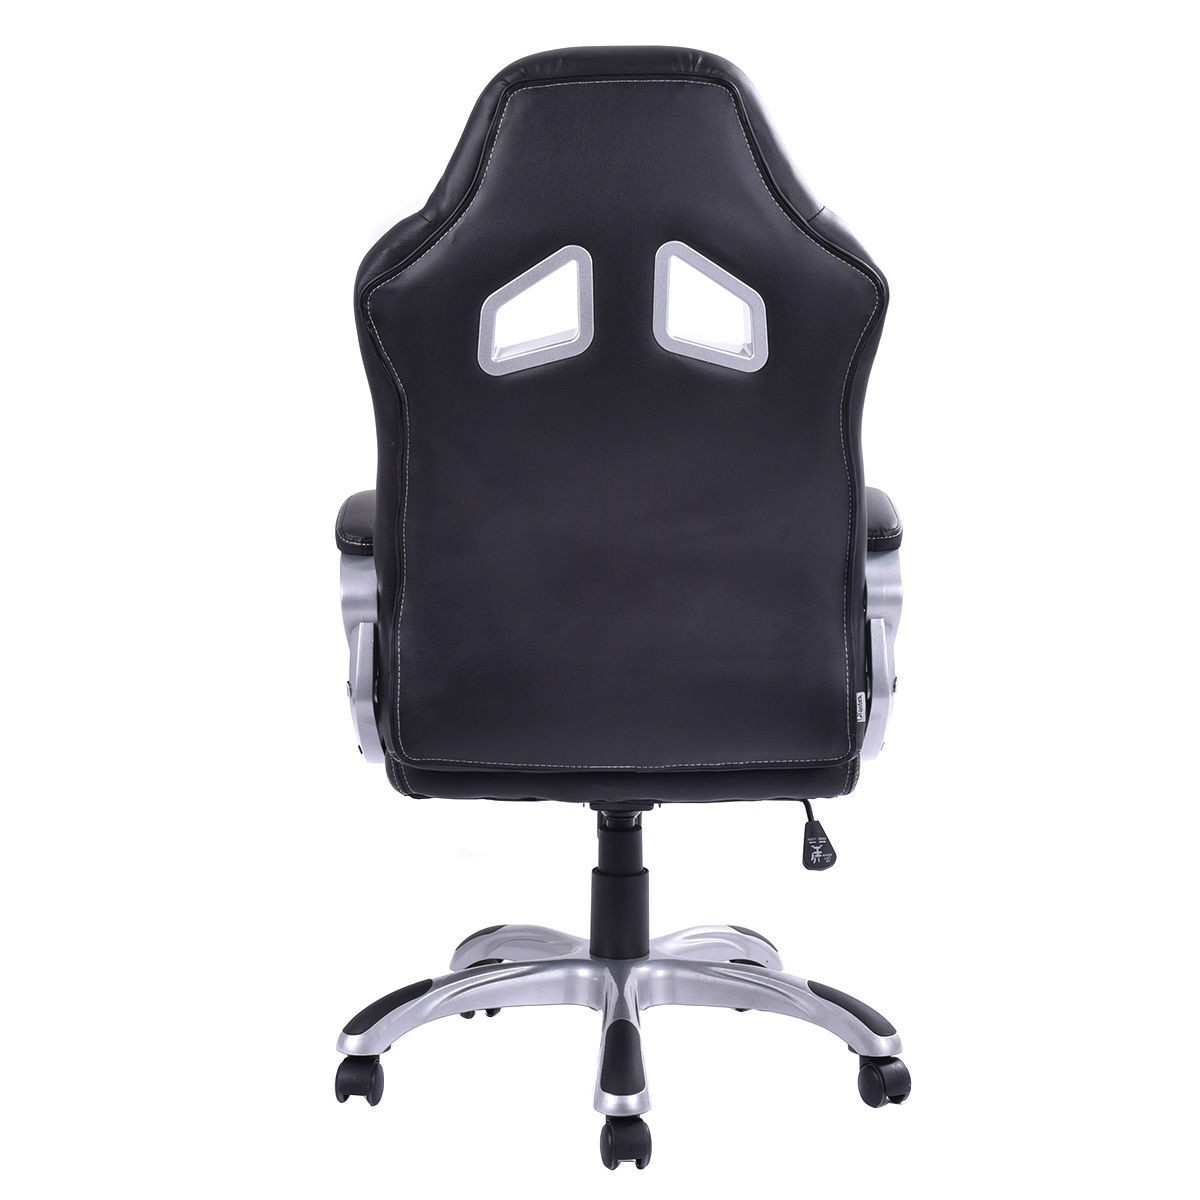 2 Color High Back Racing Style Bucket Seat Gaming Chair